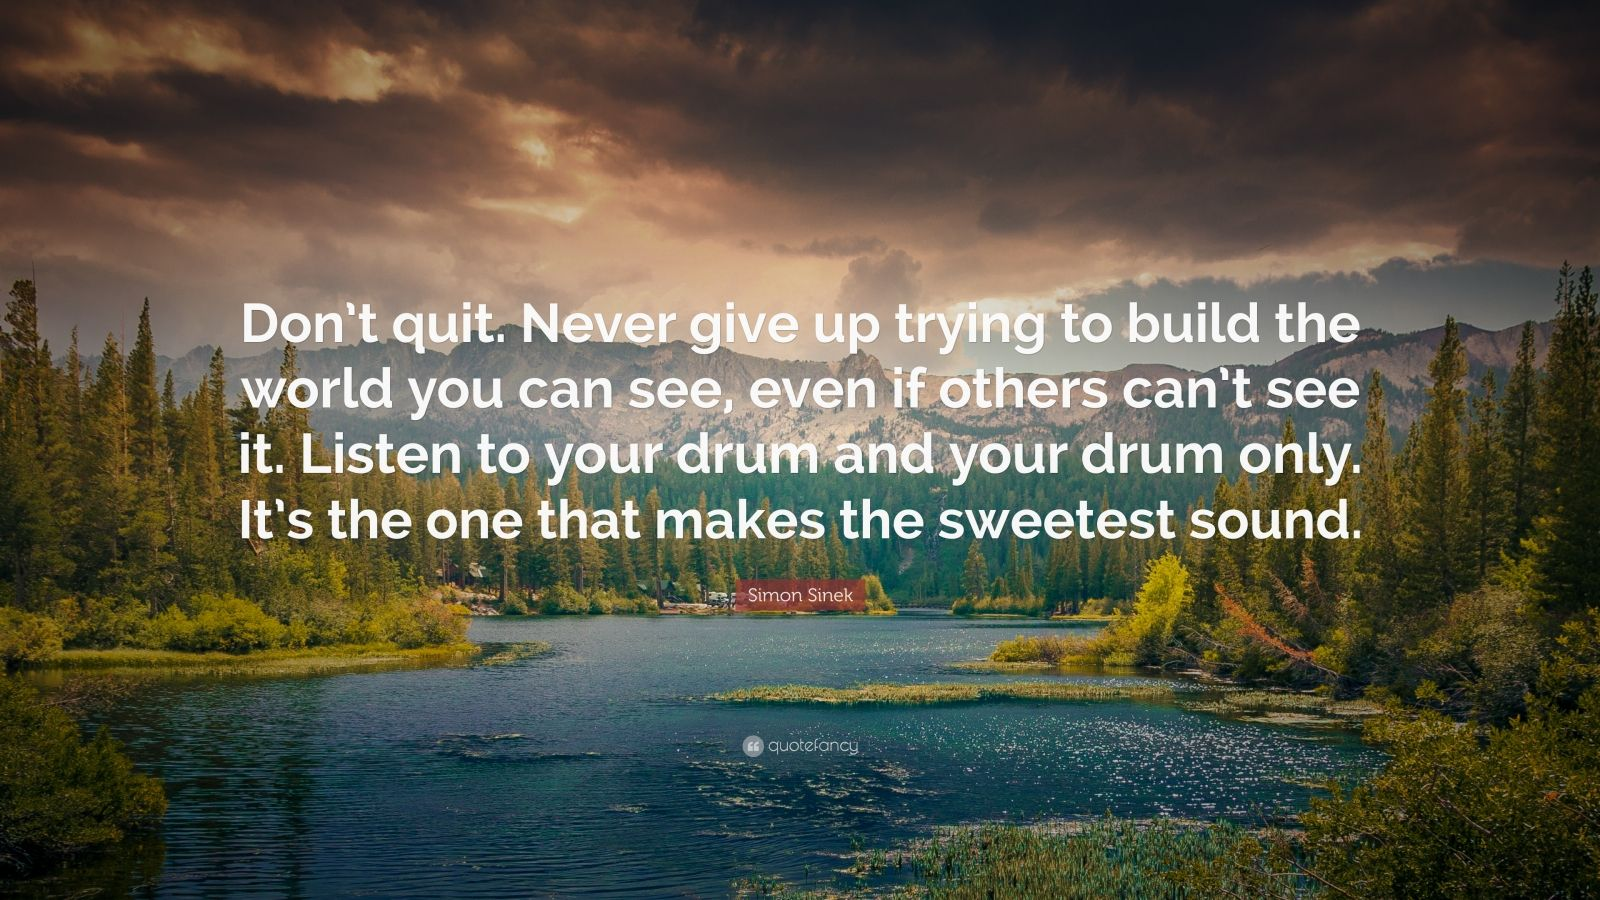 "Simon Sinek Quote: ""Don't quit. Never give up trying to build the world you can see, even if others can't see it. Listen to your drum and your drum only. It's the one that makes the sweetest sound."""